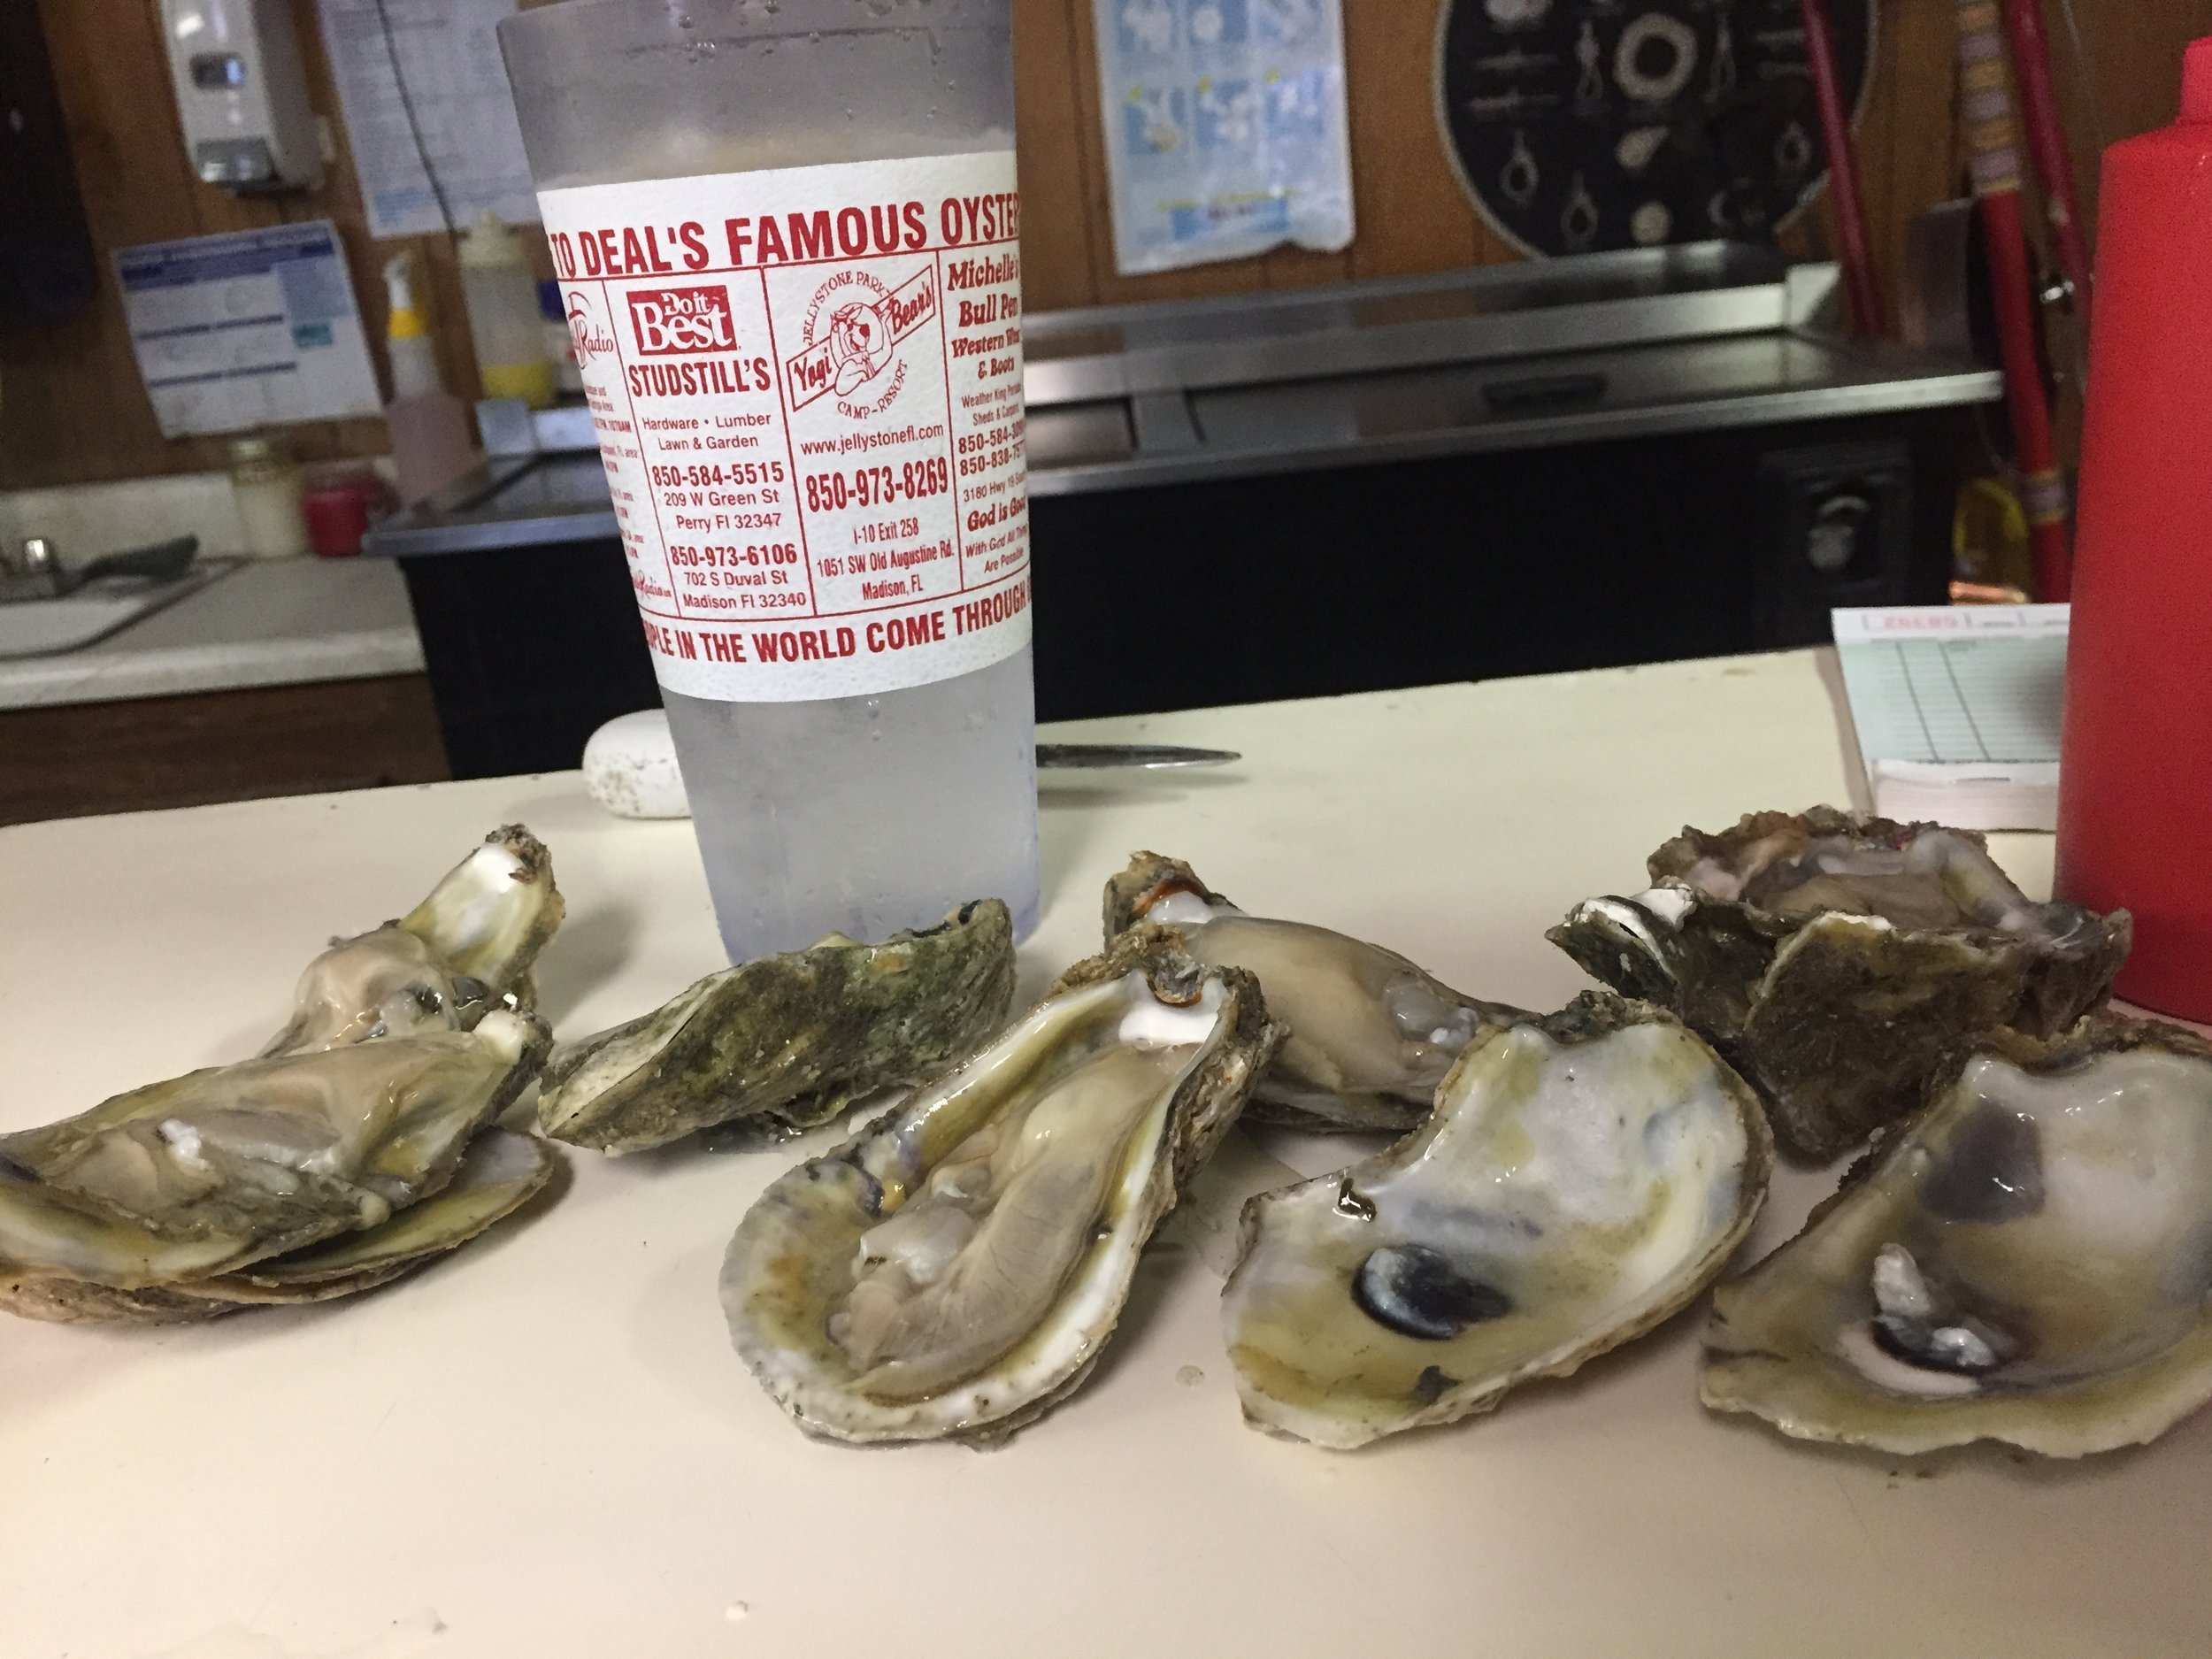 A sample of Apalachicola oysters at Deal's Famous Oyster House in Perry, Florida. Photograph by Timothy J. Walsh.